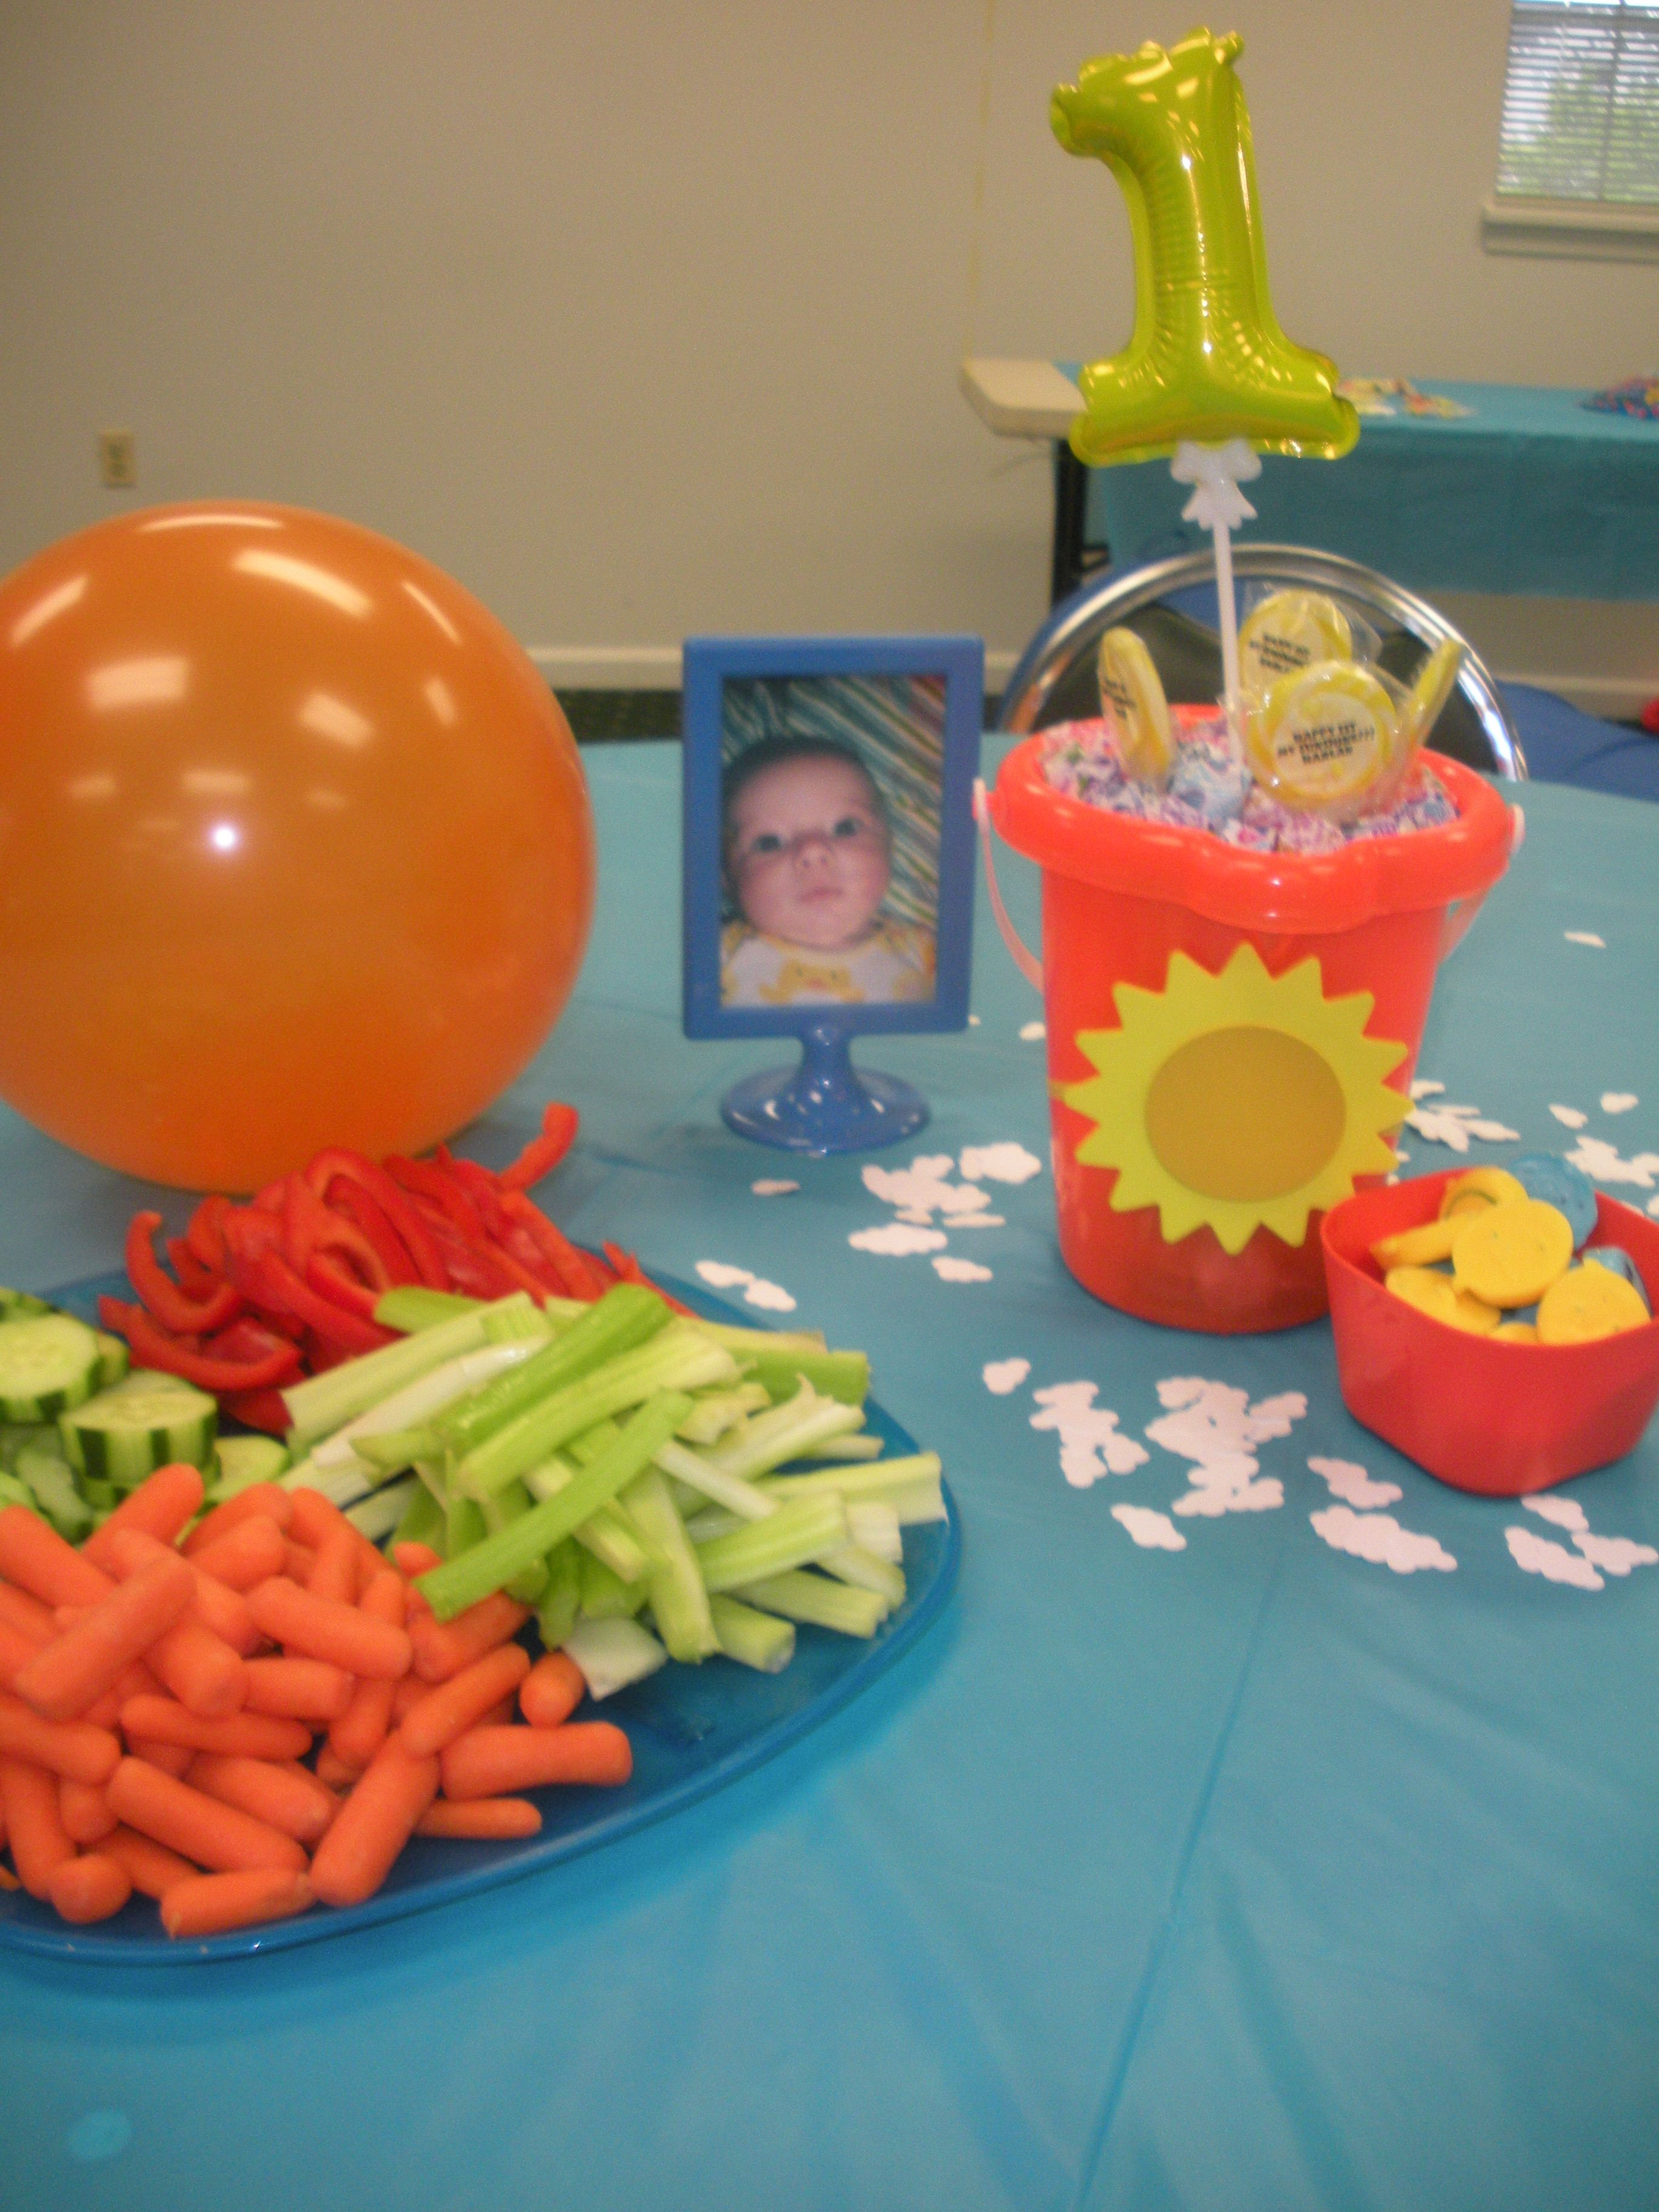 Center piece buckets with wood sun hot glued with ribbon.  1 balloon with lolipops stuck in foam.  Double sided frame from IKEA and smiley chocolate molds.  punched cloud confetti on blue table cloth